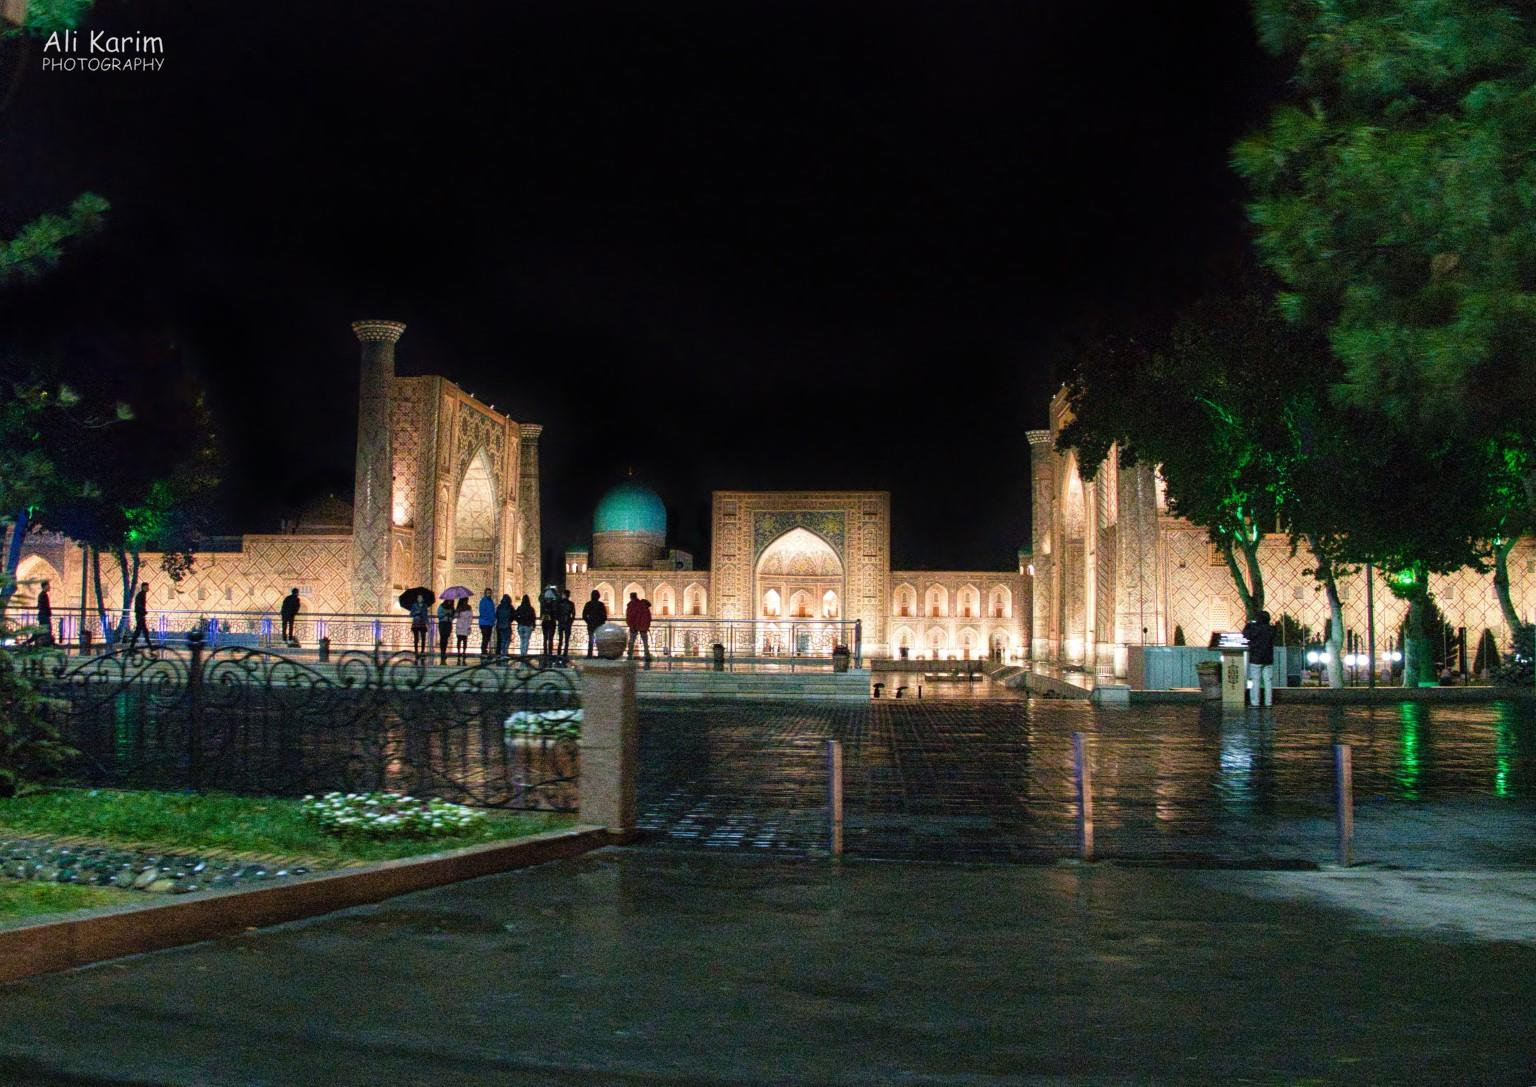 More Samarkand, The Magnificent Registan by night